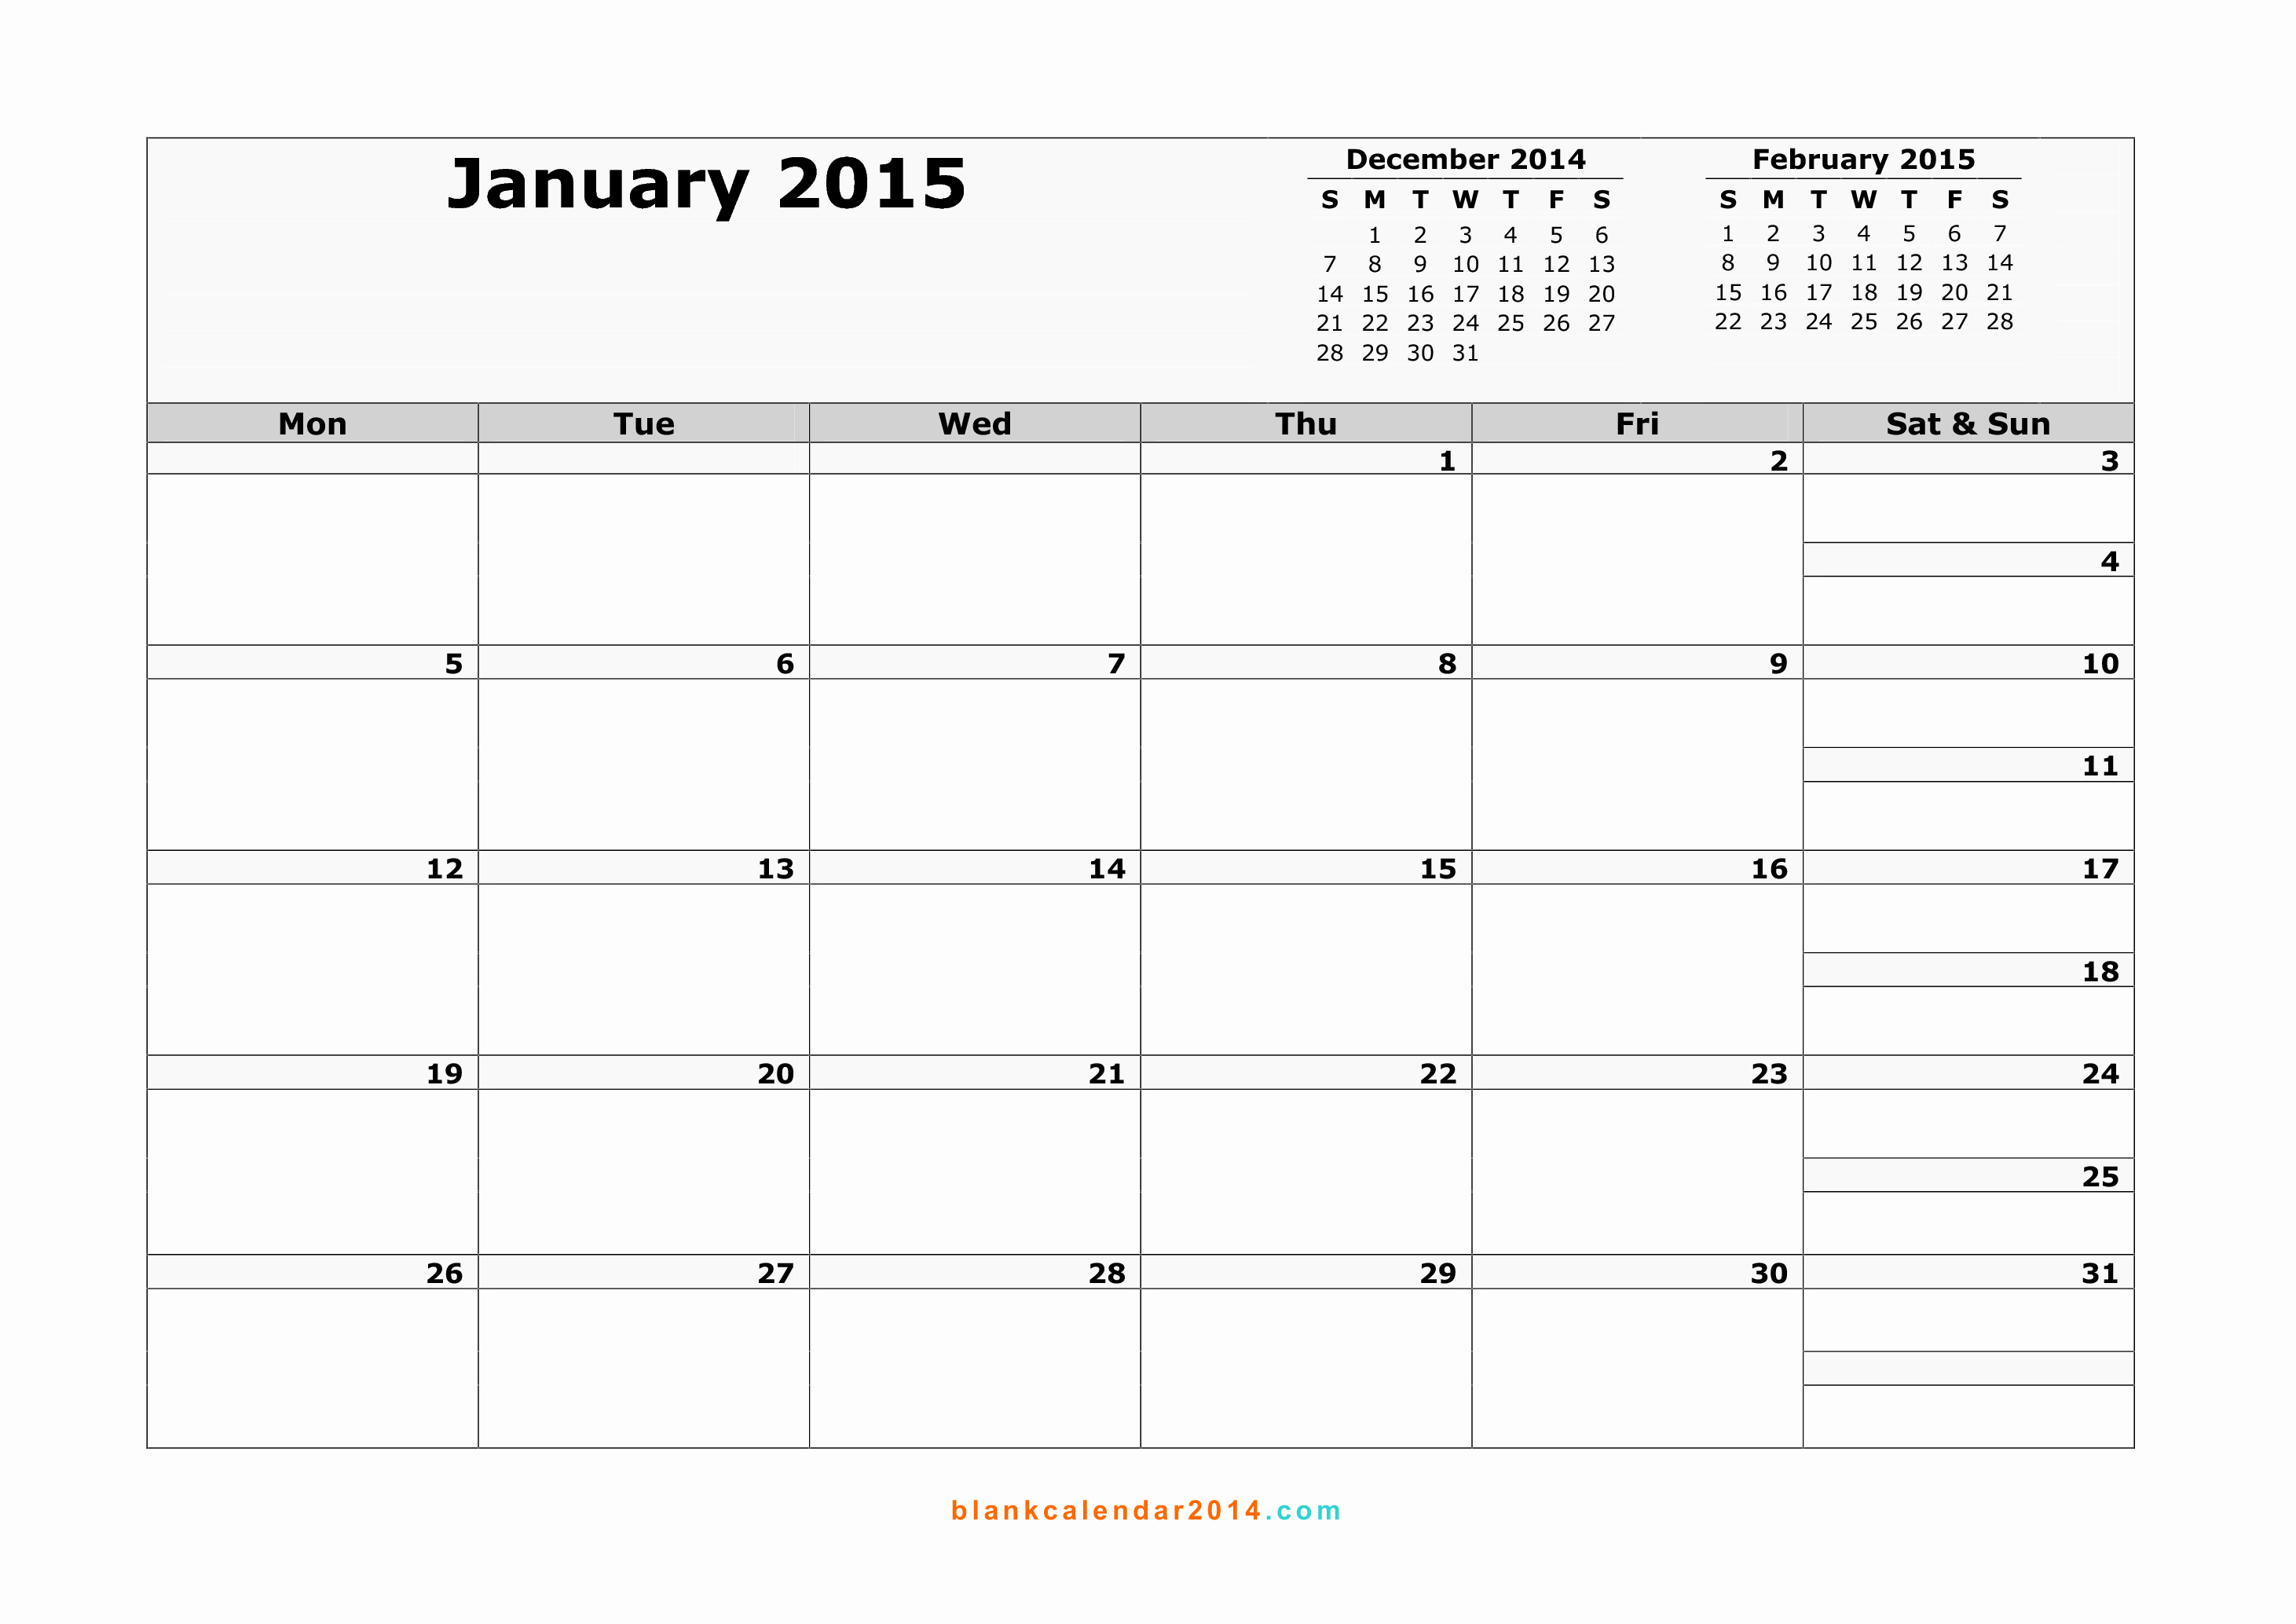 Quarterly Calendar Template 2015 Inspirational Monthly Printable Calendar 2015 – 2017 Printable Calendar